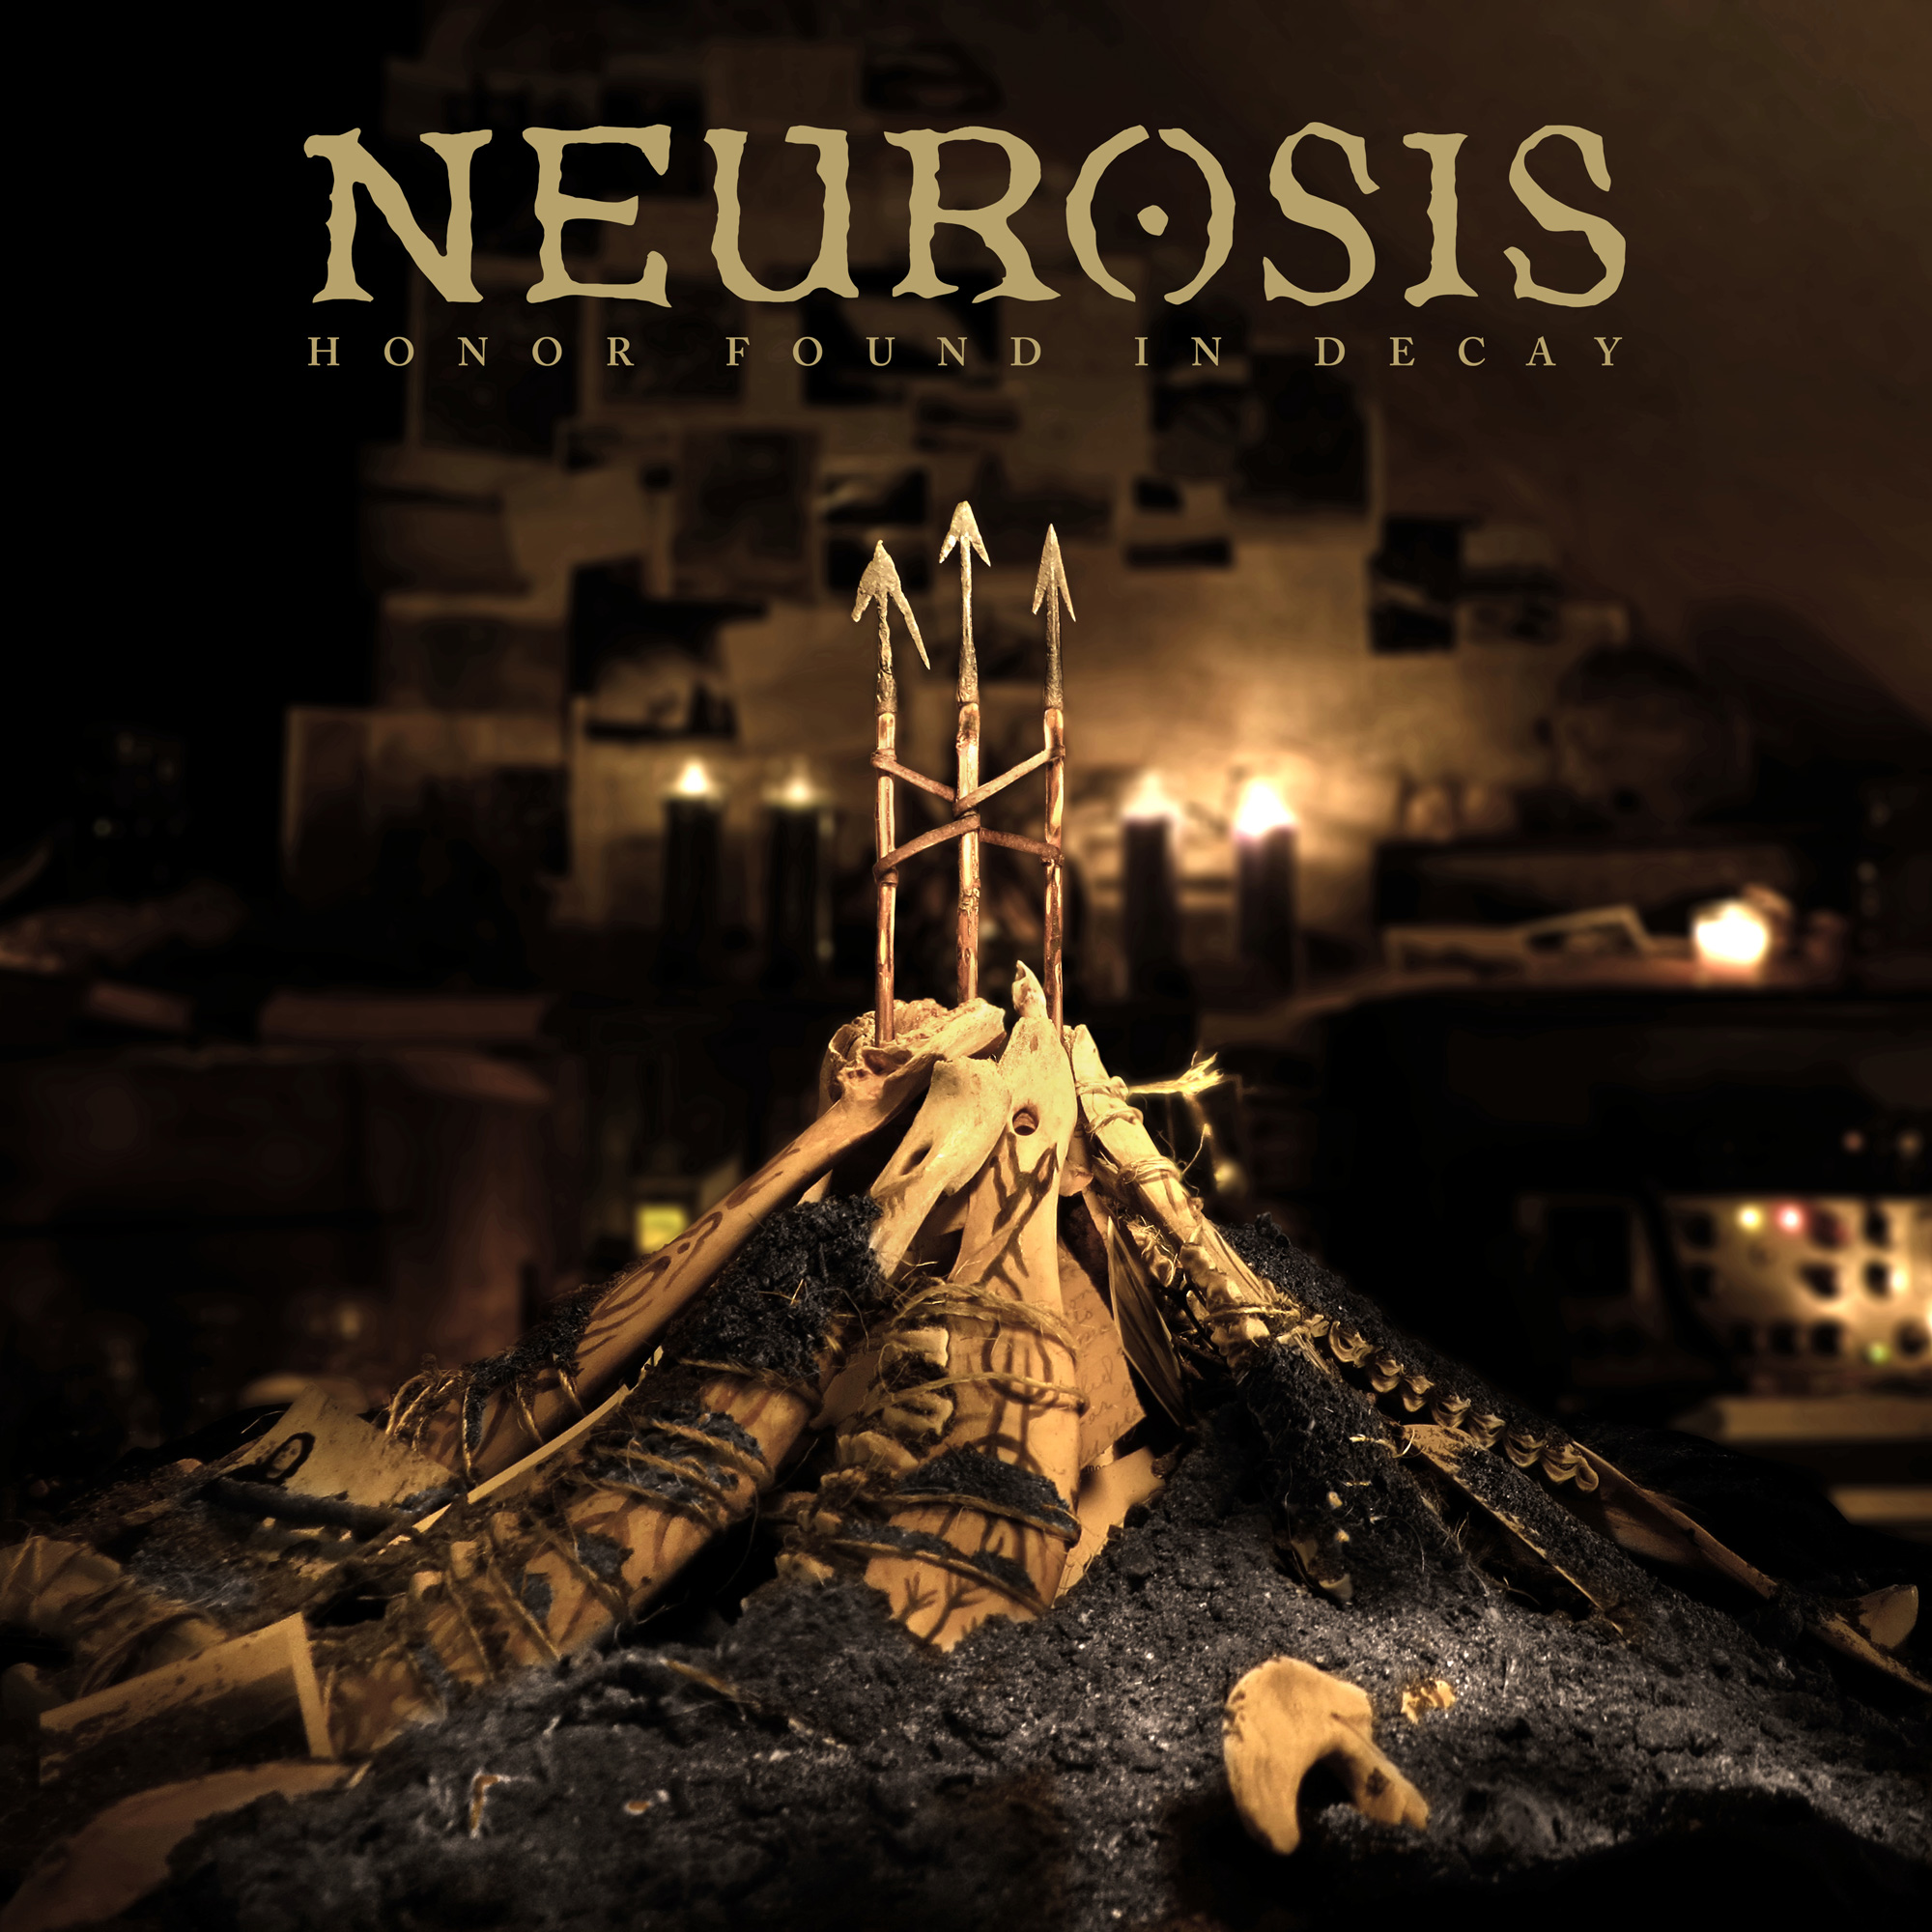 neurosis-honor-found-in-decay-cover-art[1]